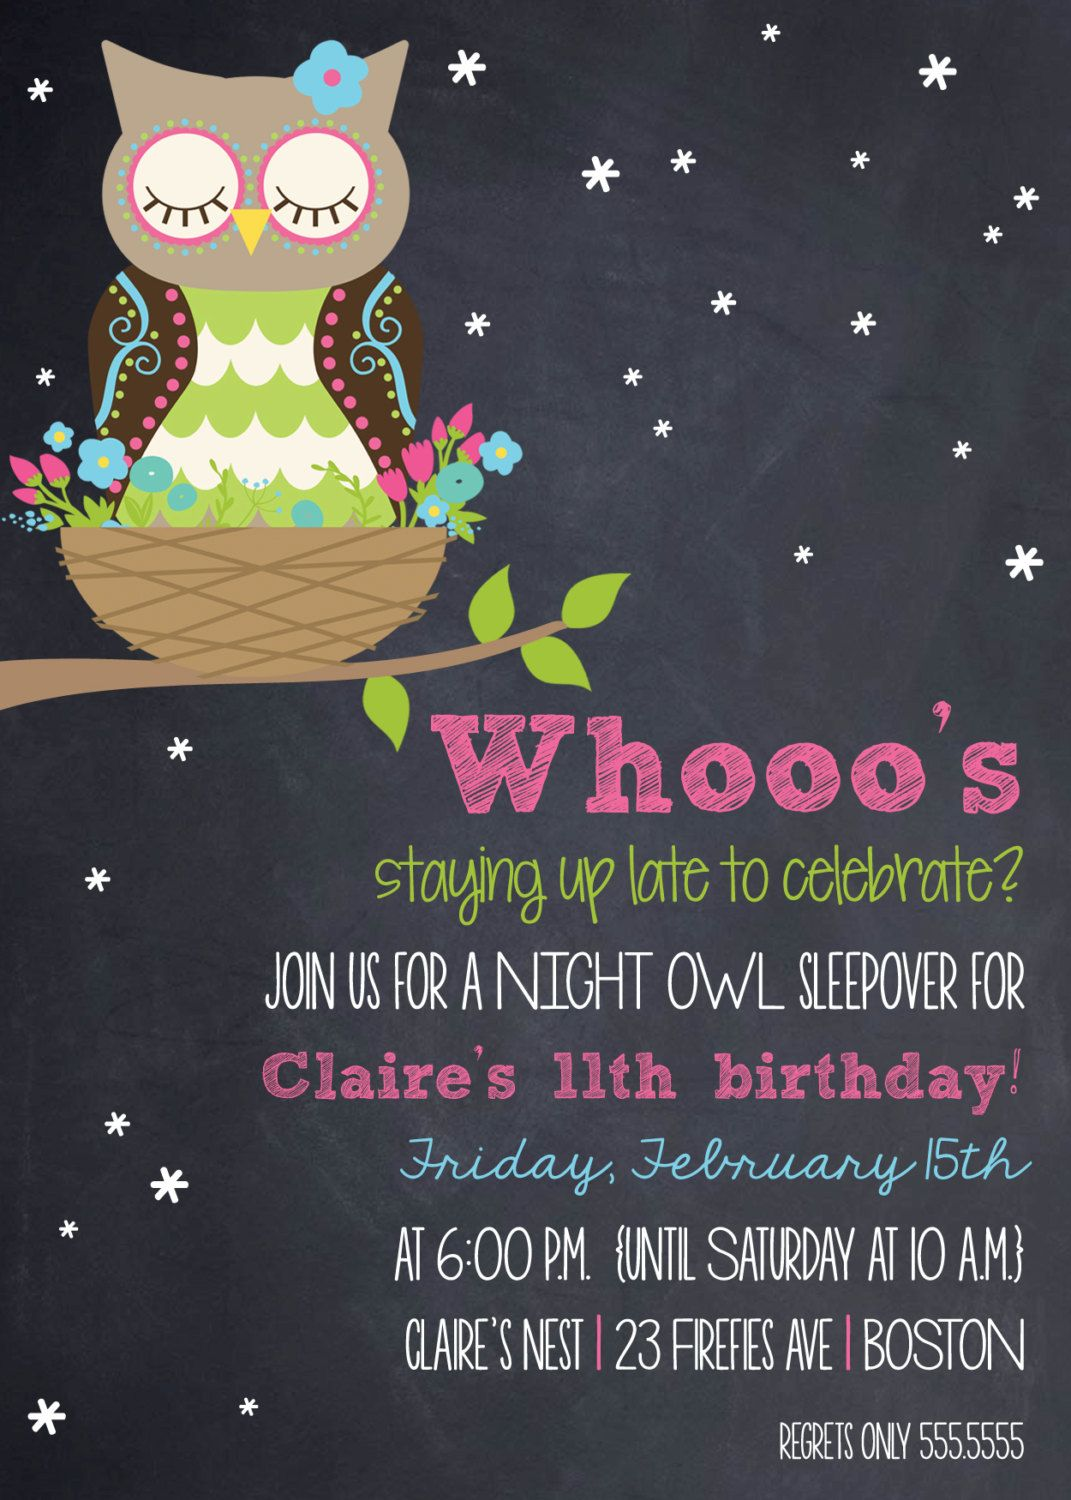 woodland night owl sleepover birthday invitation by theteacookie